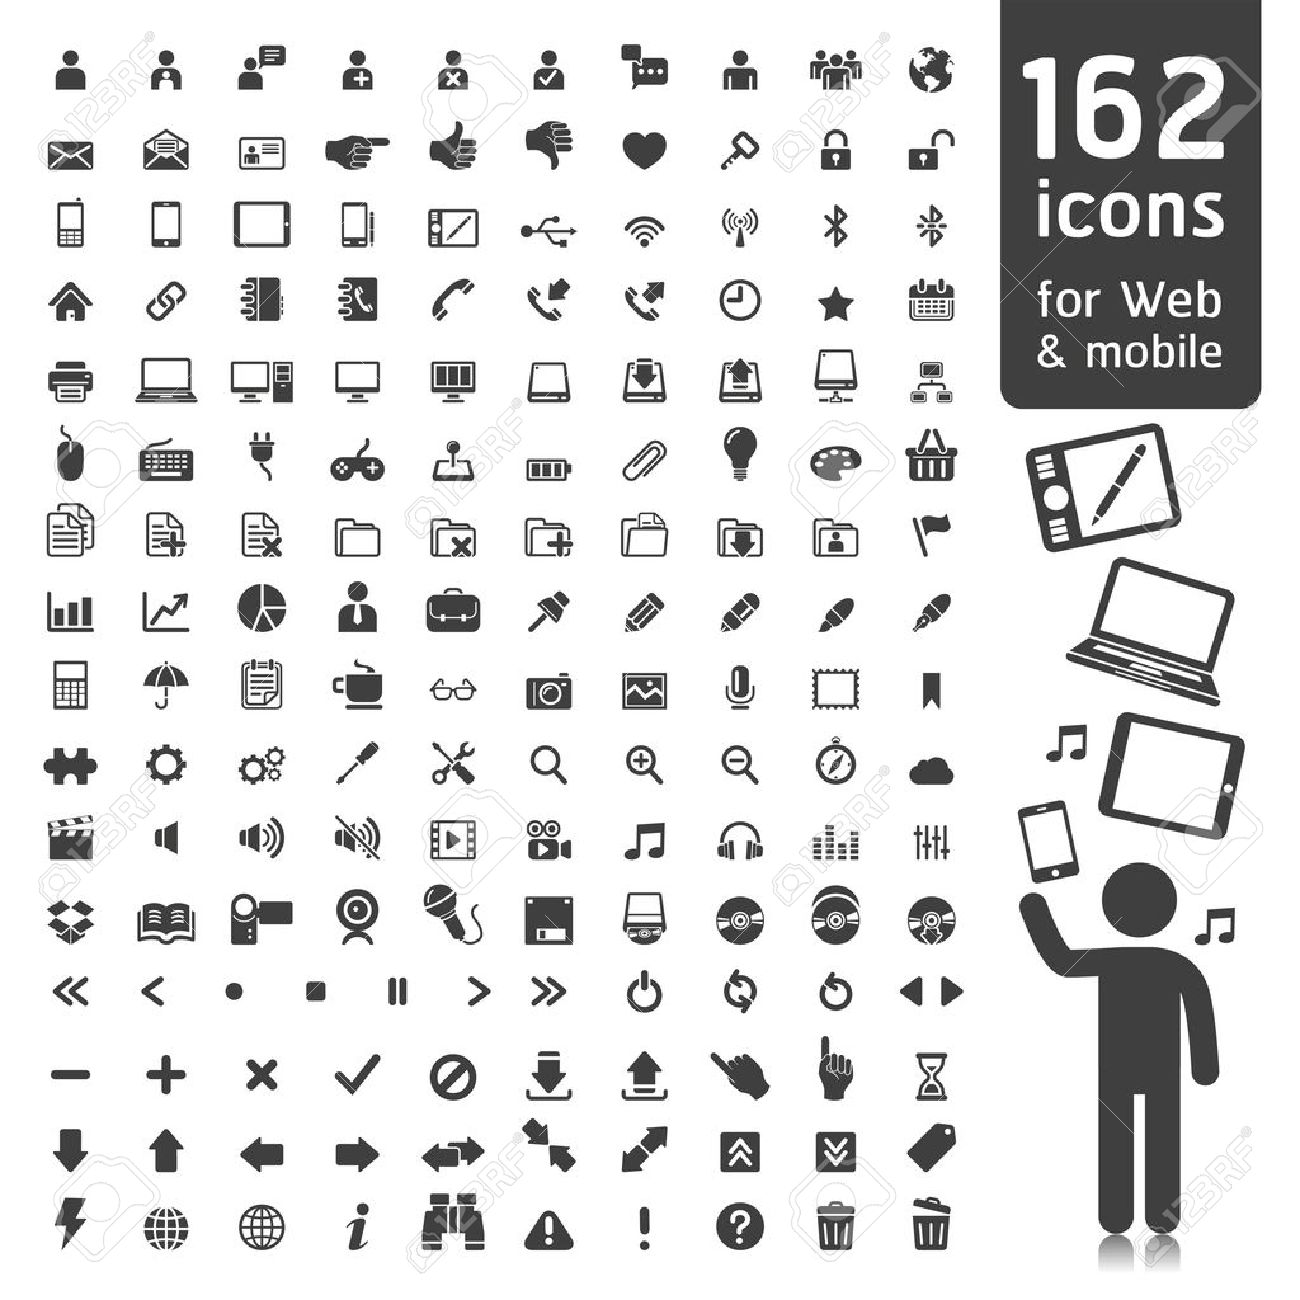 162 Icons for Web, Applications and Tablet Mobile. - 15280807